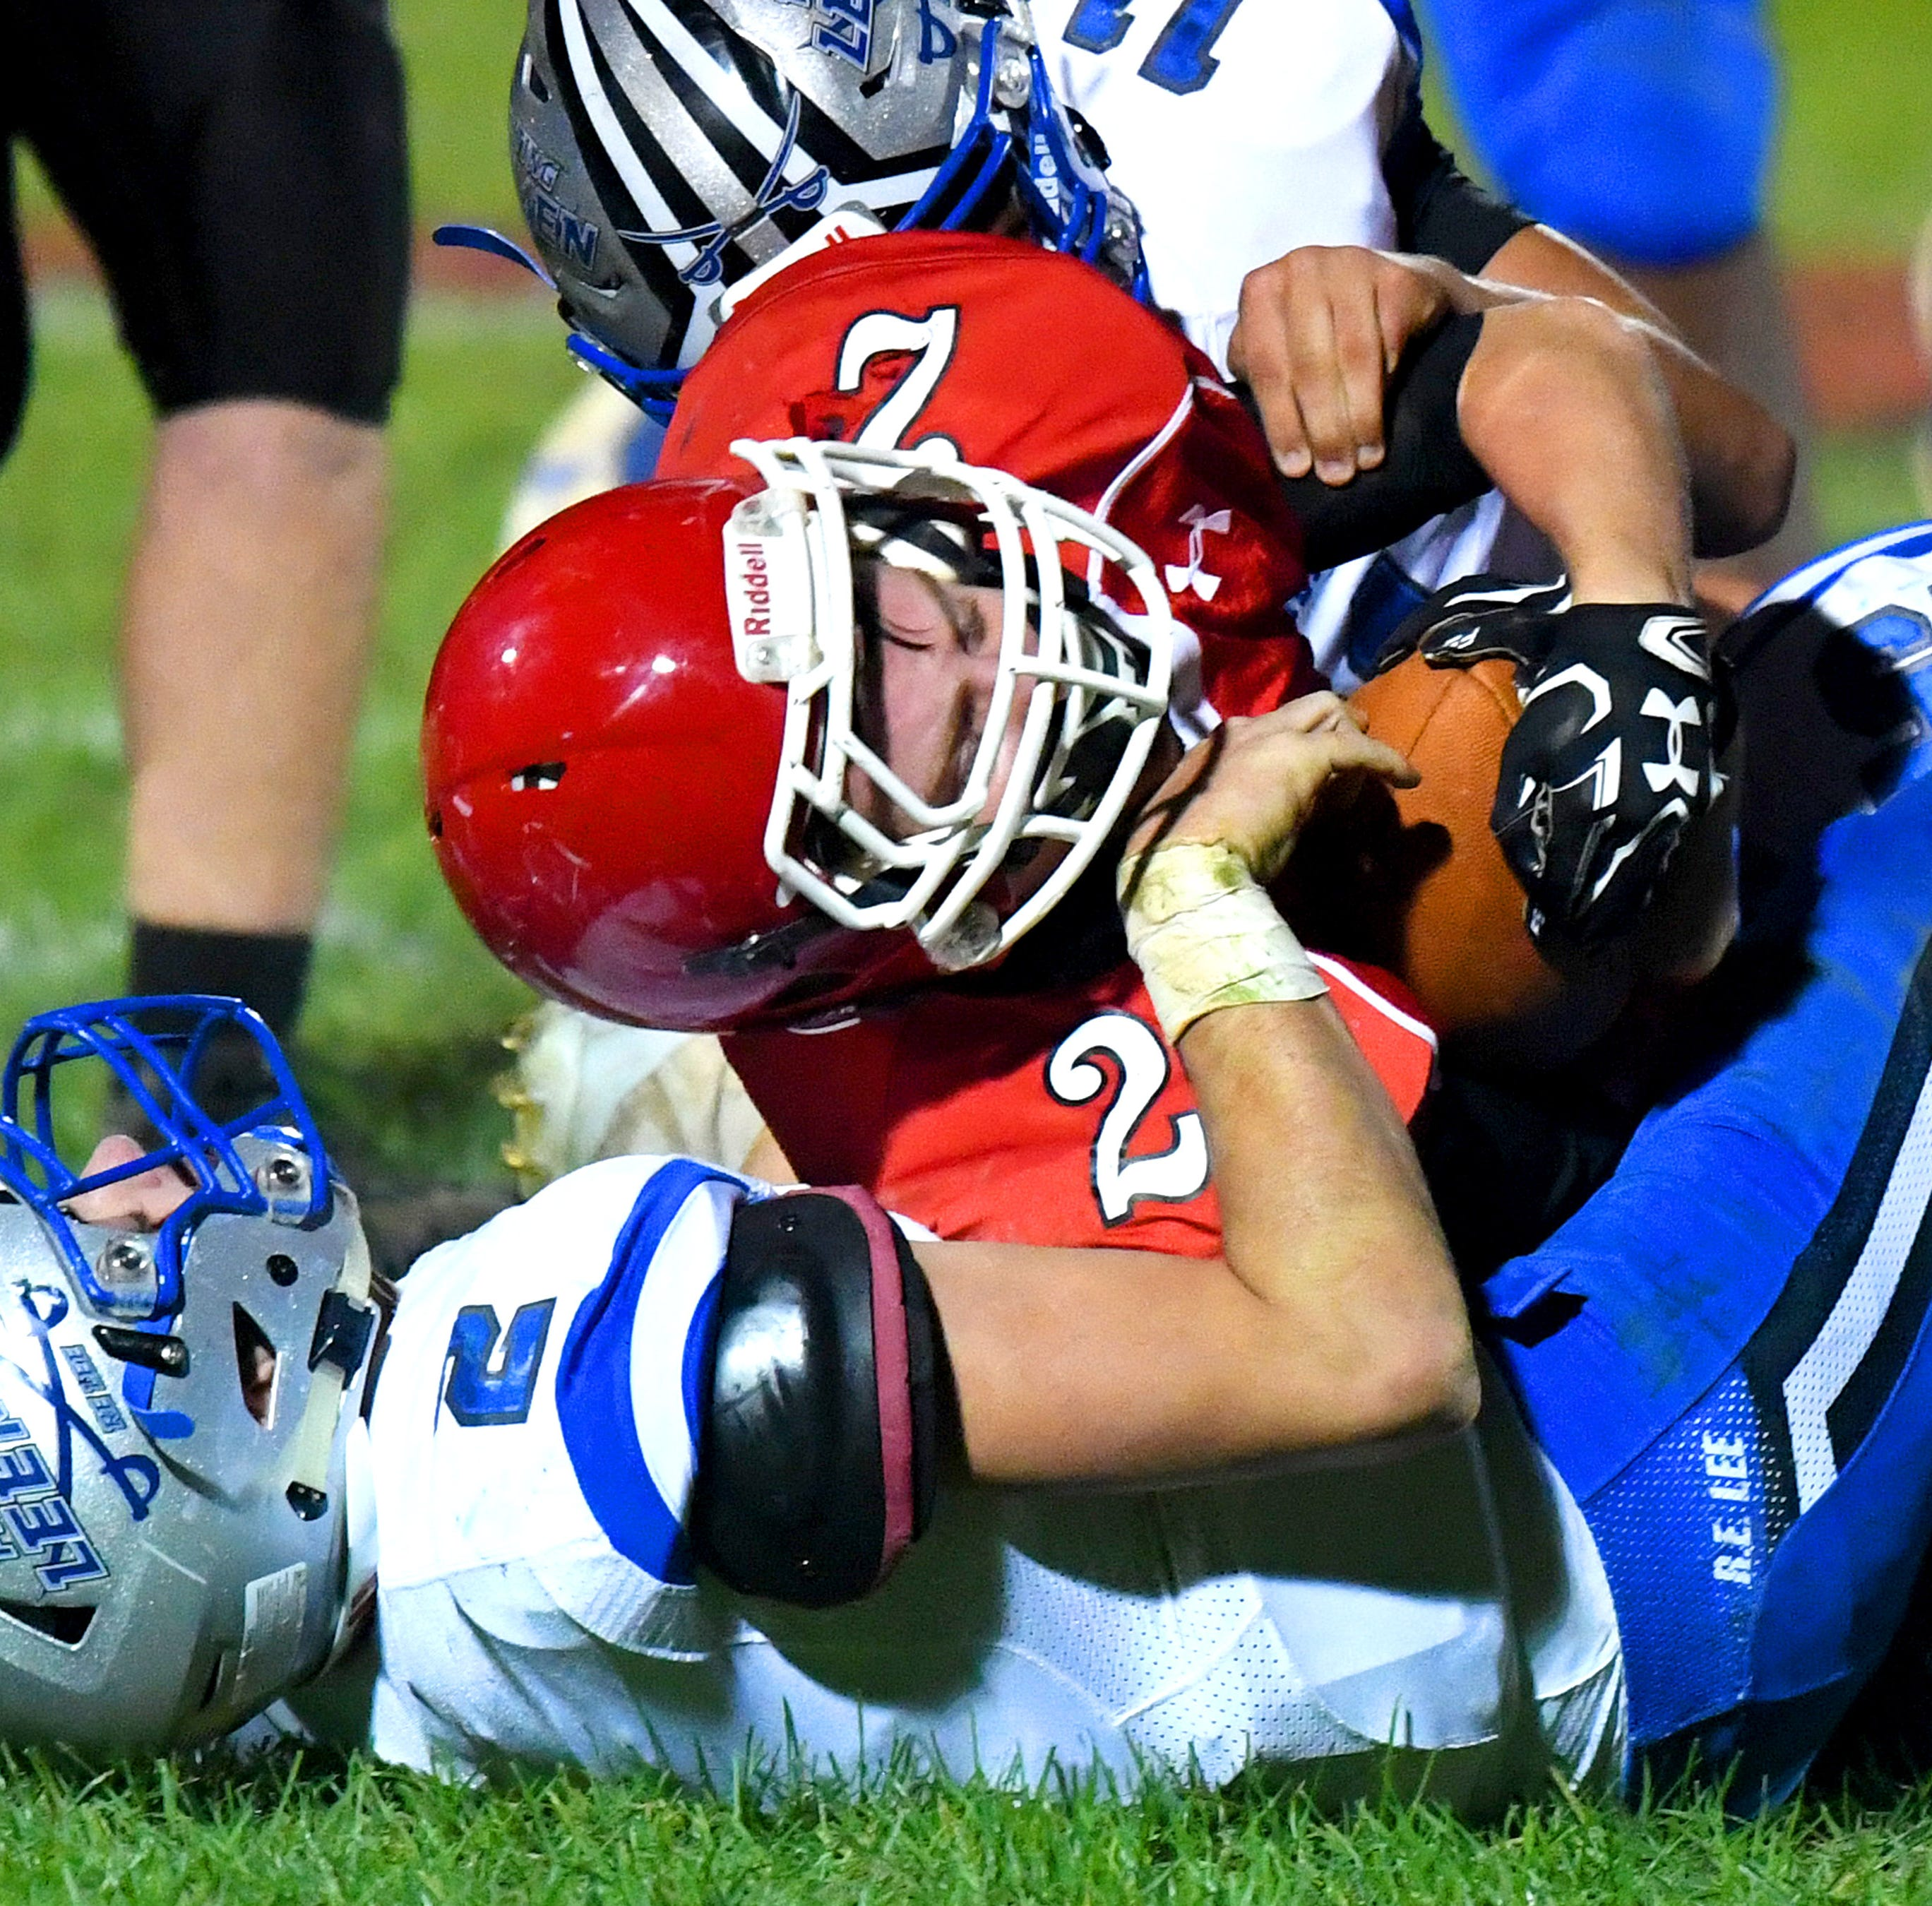 Photos: Riverheads scores win over R.E. Lee